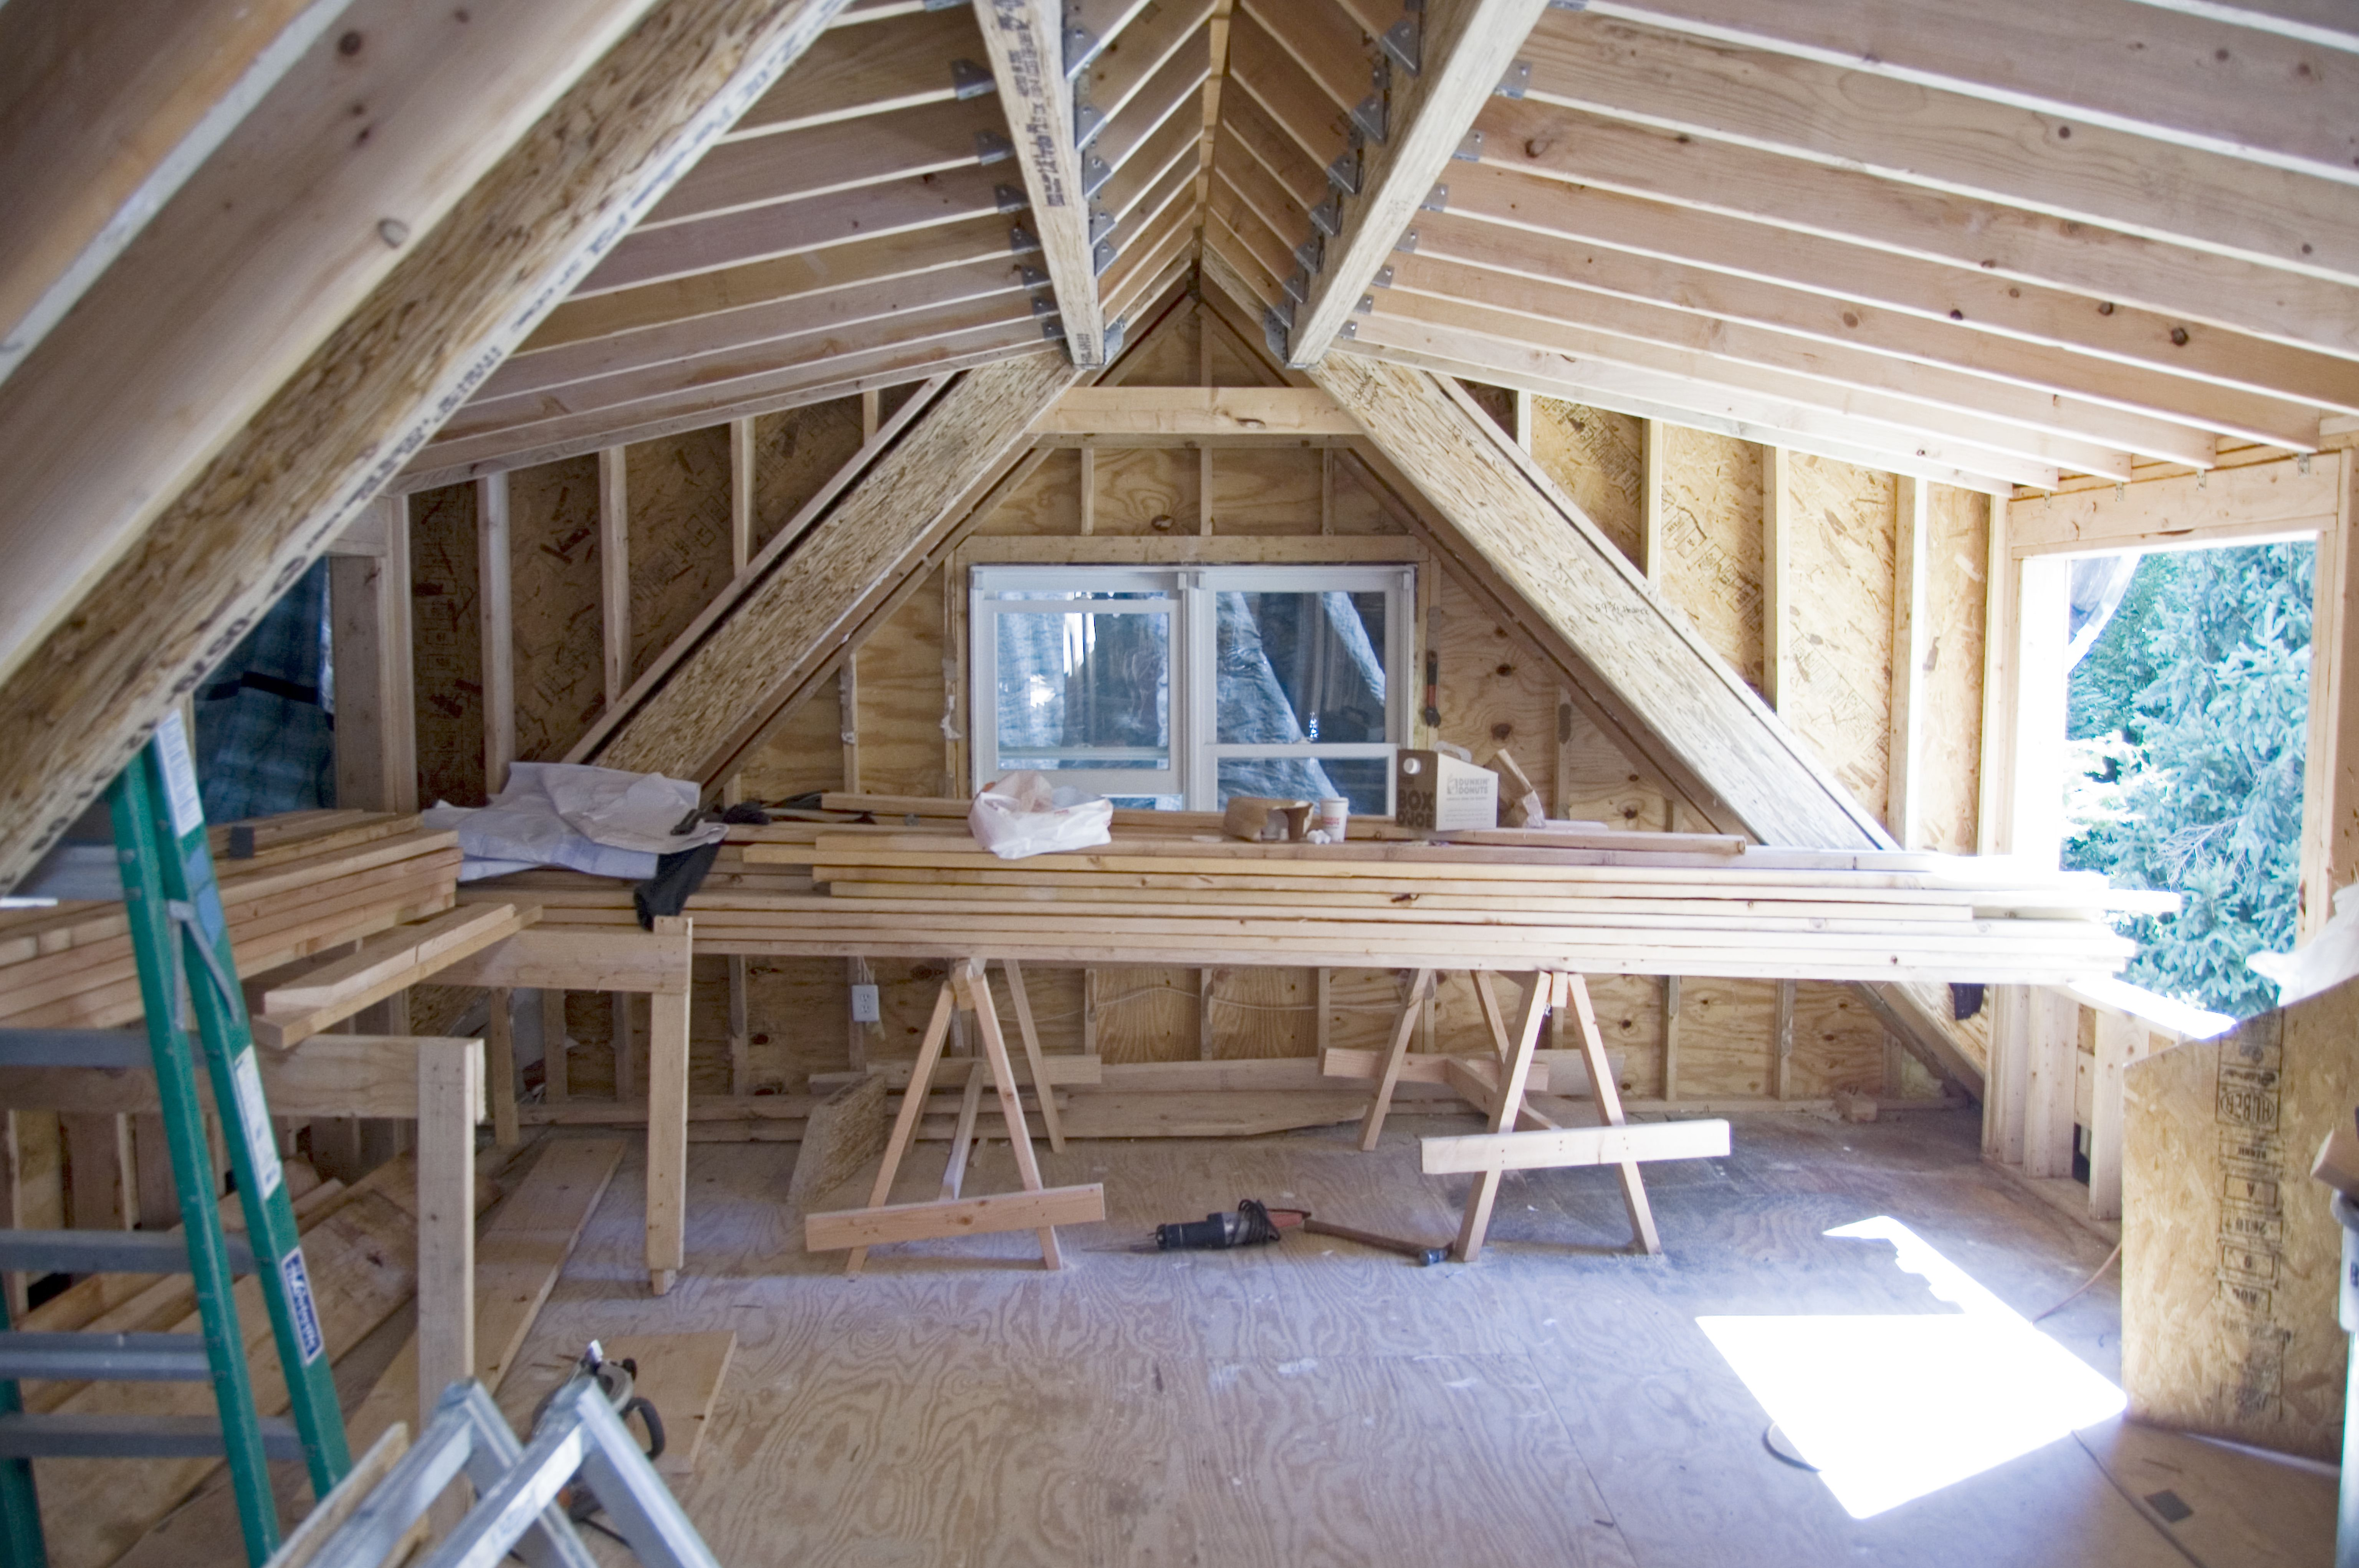 Shed Dormer Framing for Driveway Side Bedroom | Dachausbau ...